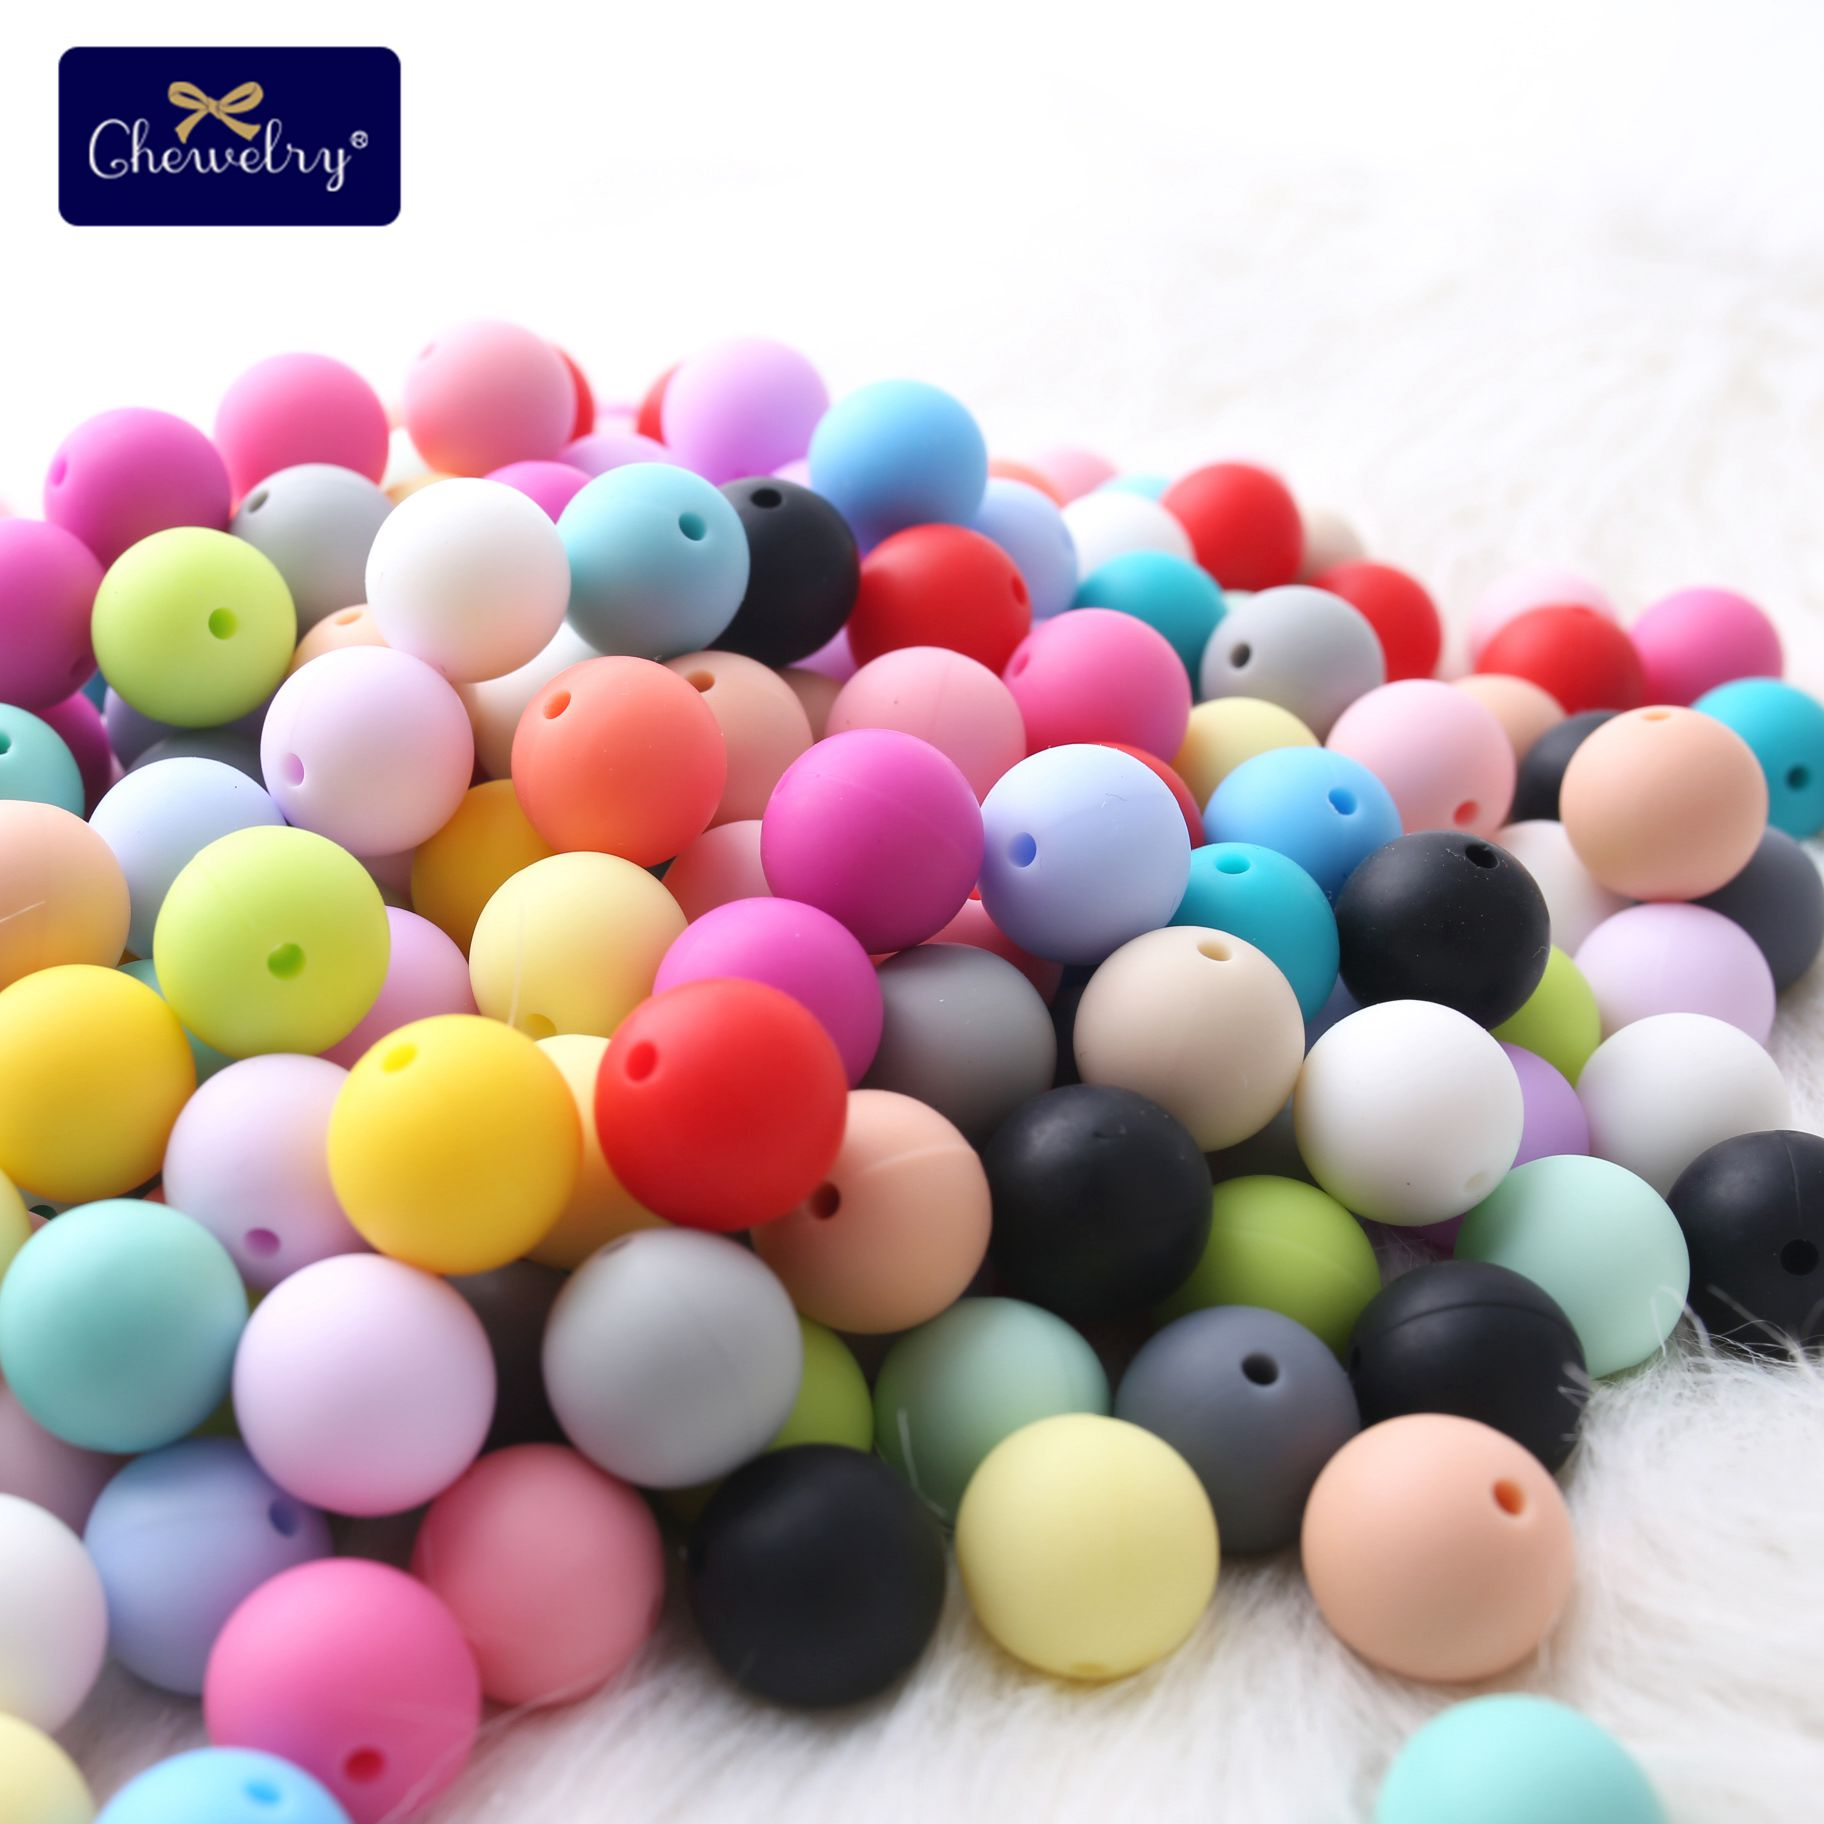 100pc 12mm Baby Silicone Bead Teether Diy For Nursing Necklace Food Grade Silicone Teething Silicone Rodent Pacifier Pendant Toy